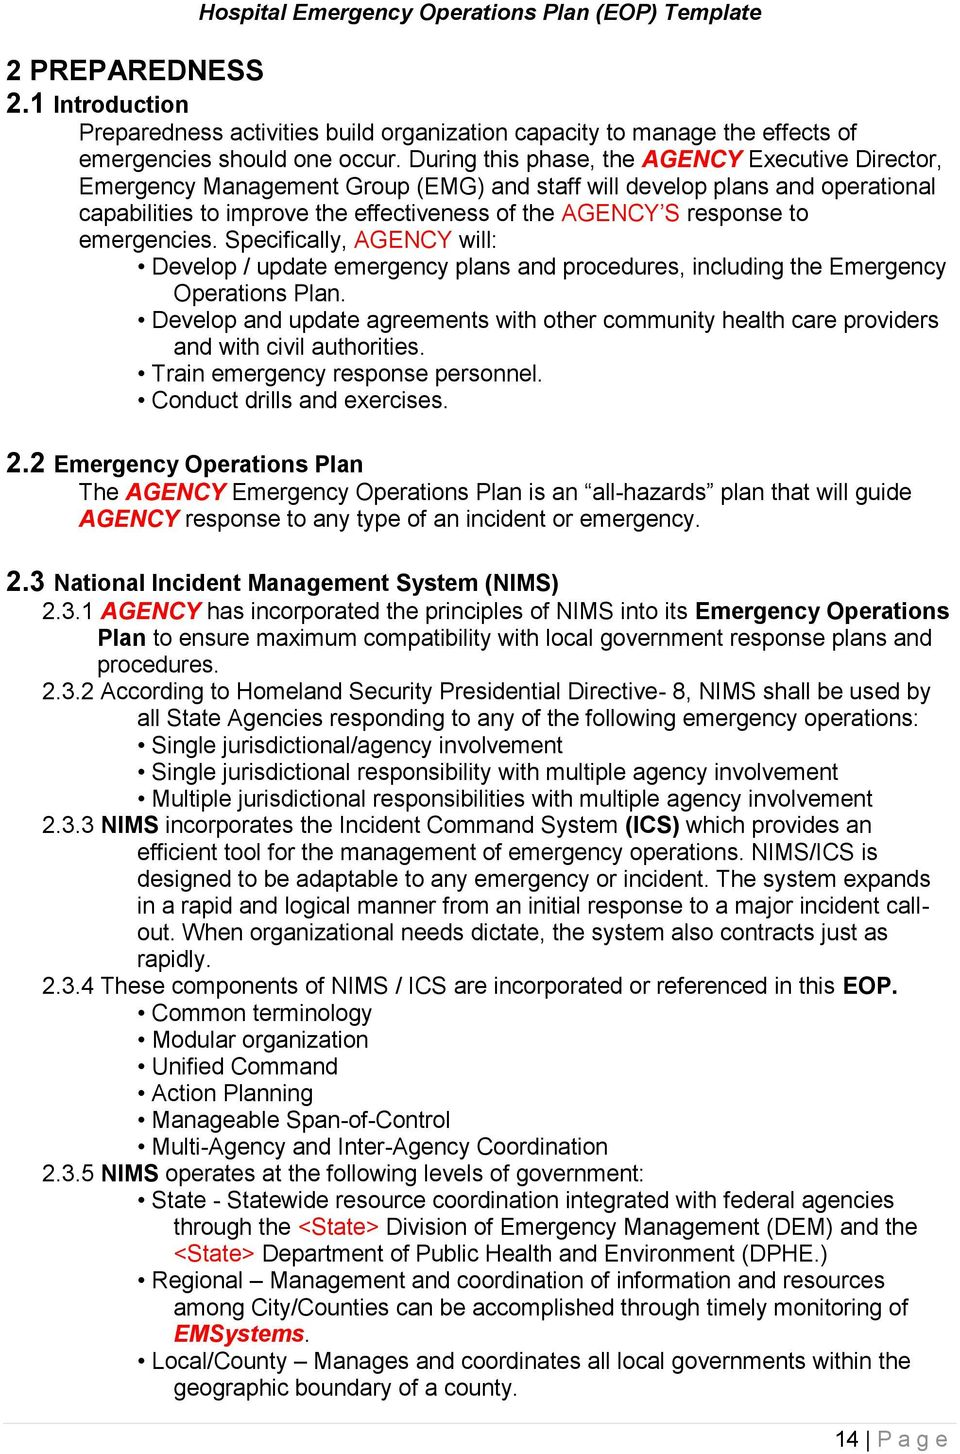 State Emergency Operations Plan